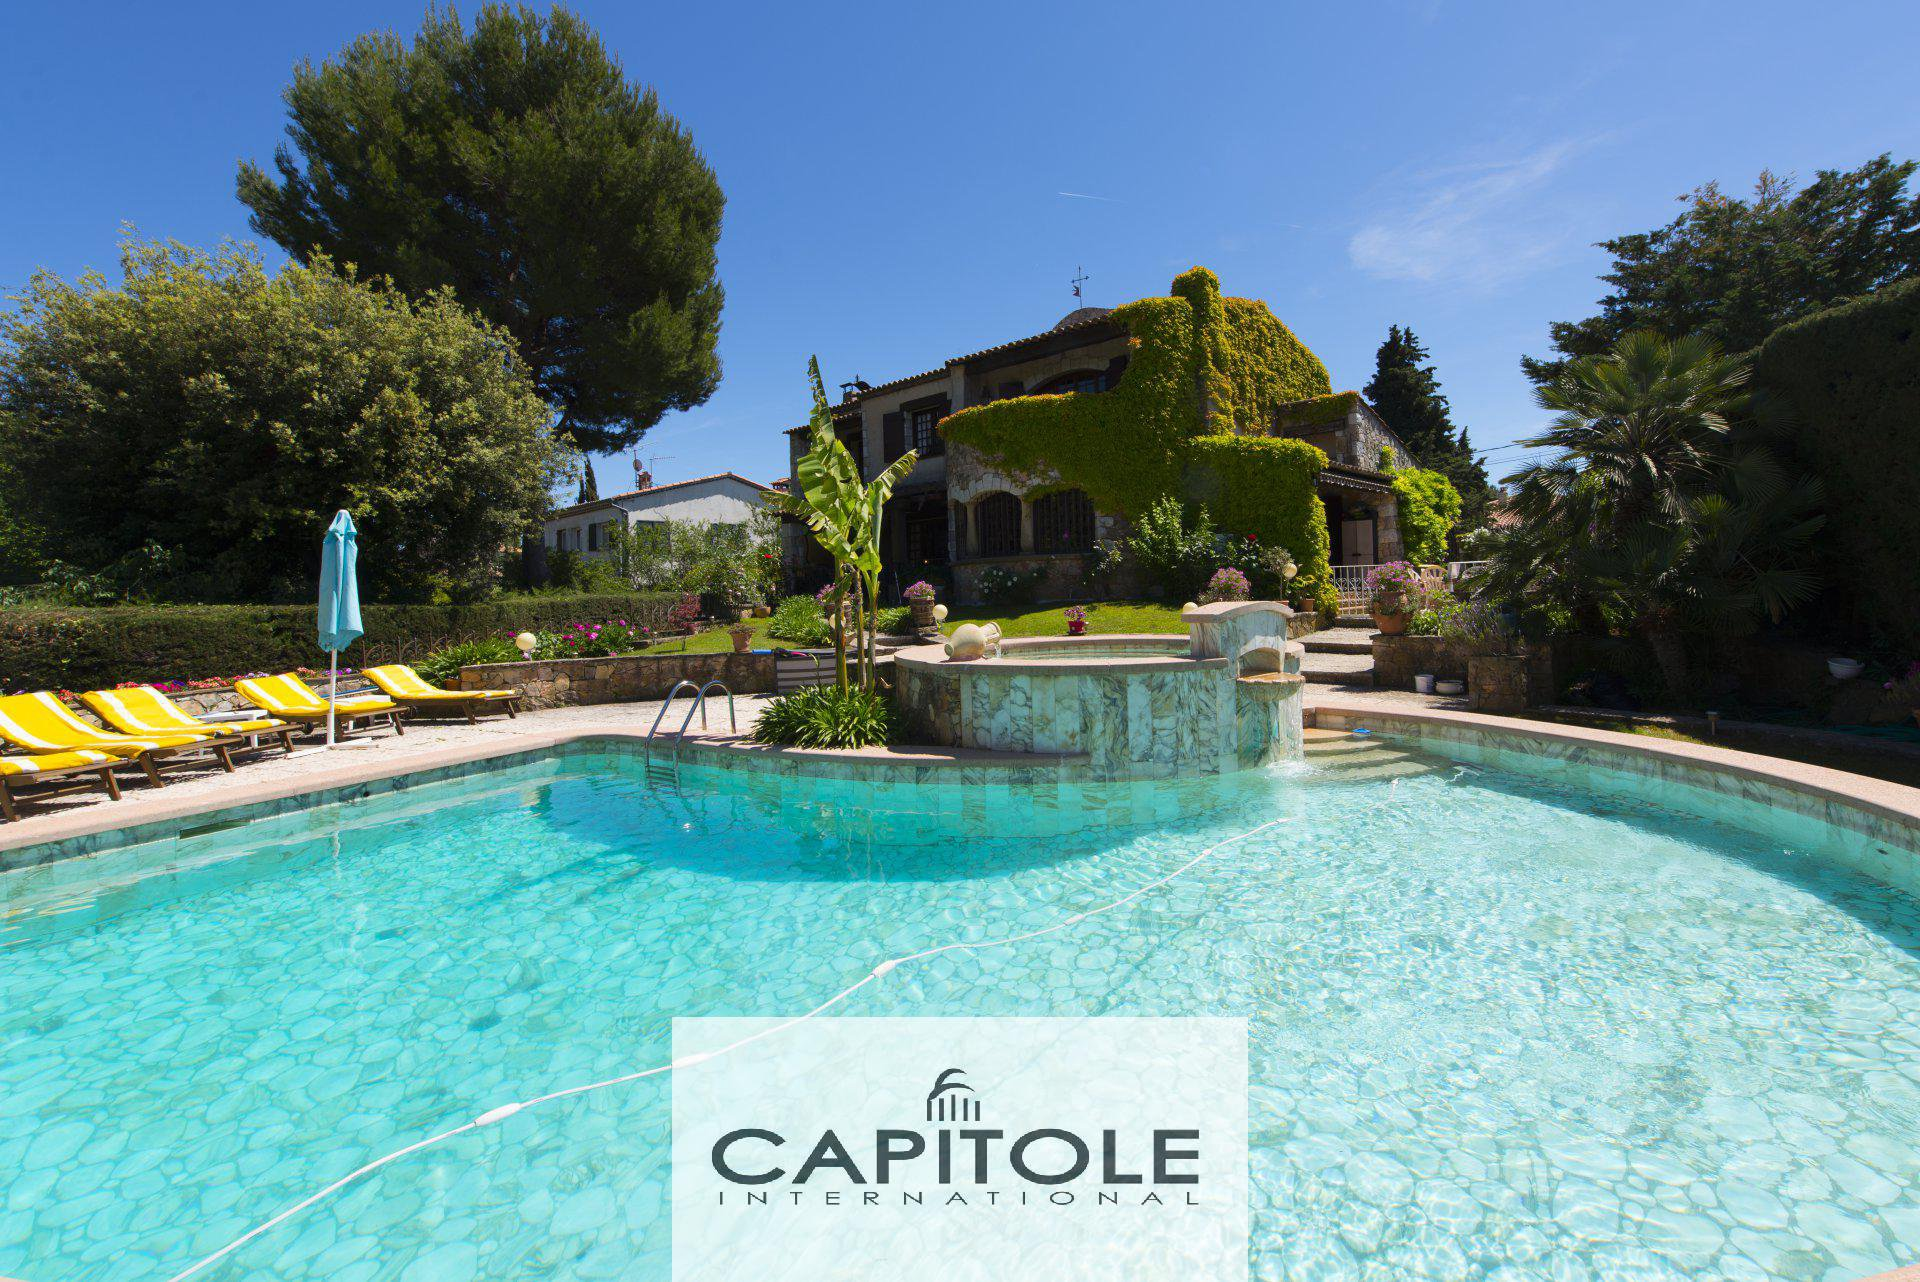 For sale, Antibes, 5 bedroom stone built villa 250m², pool, plot 1750m²